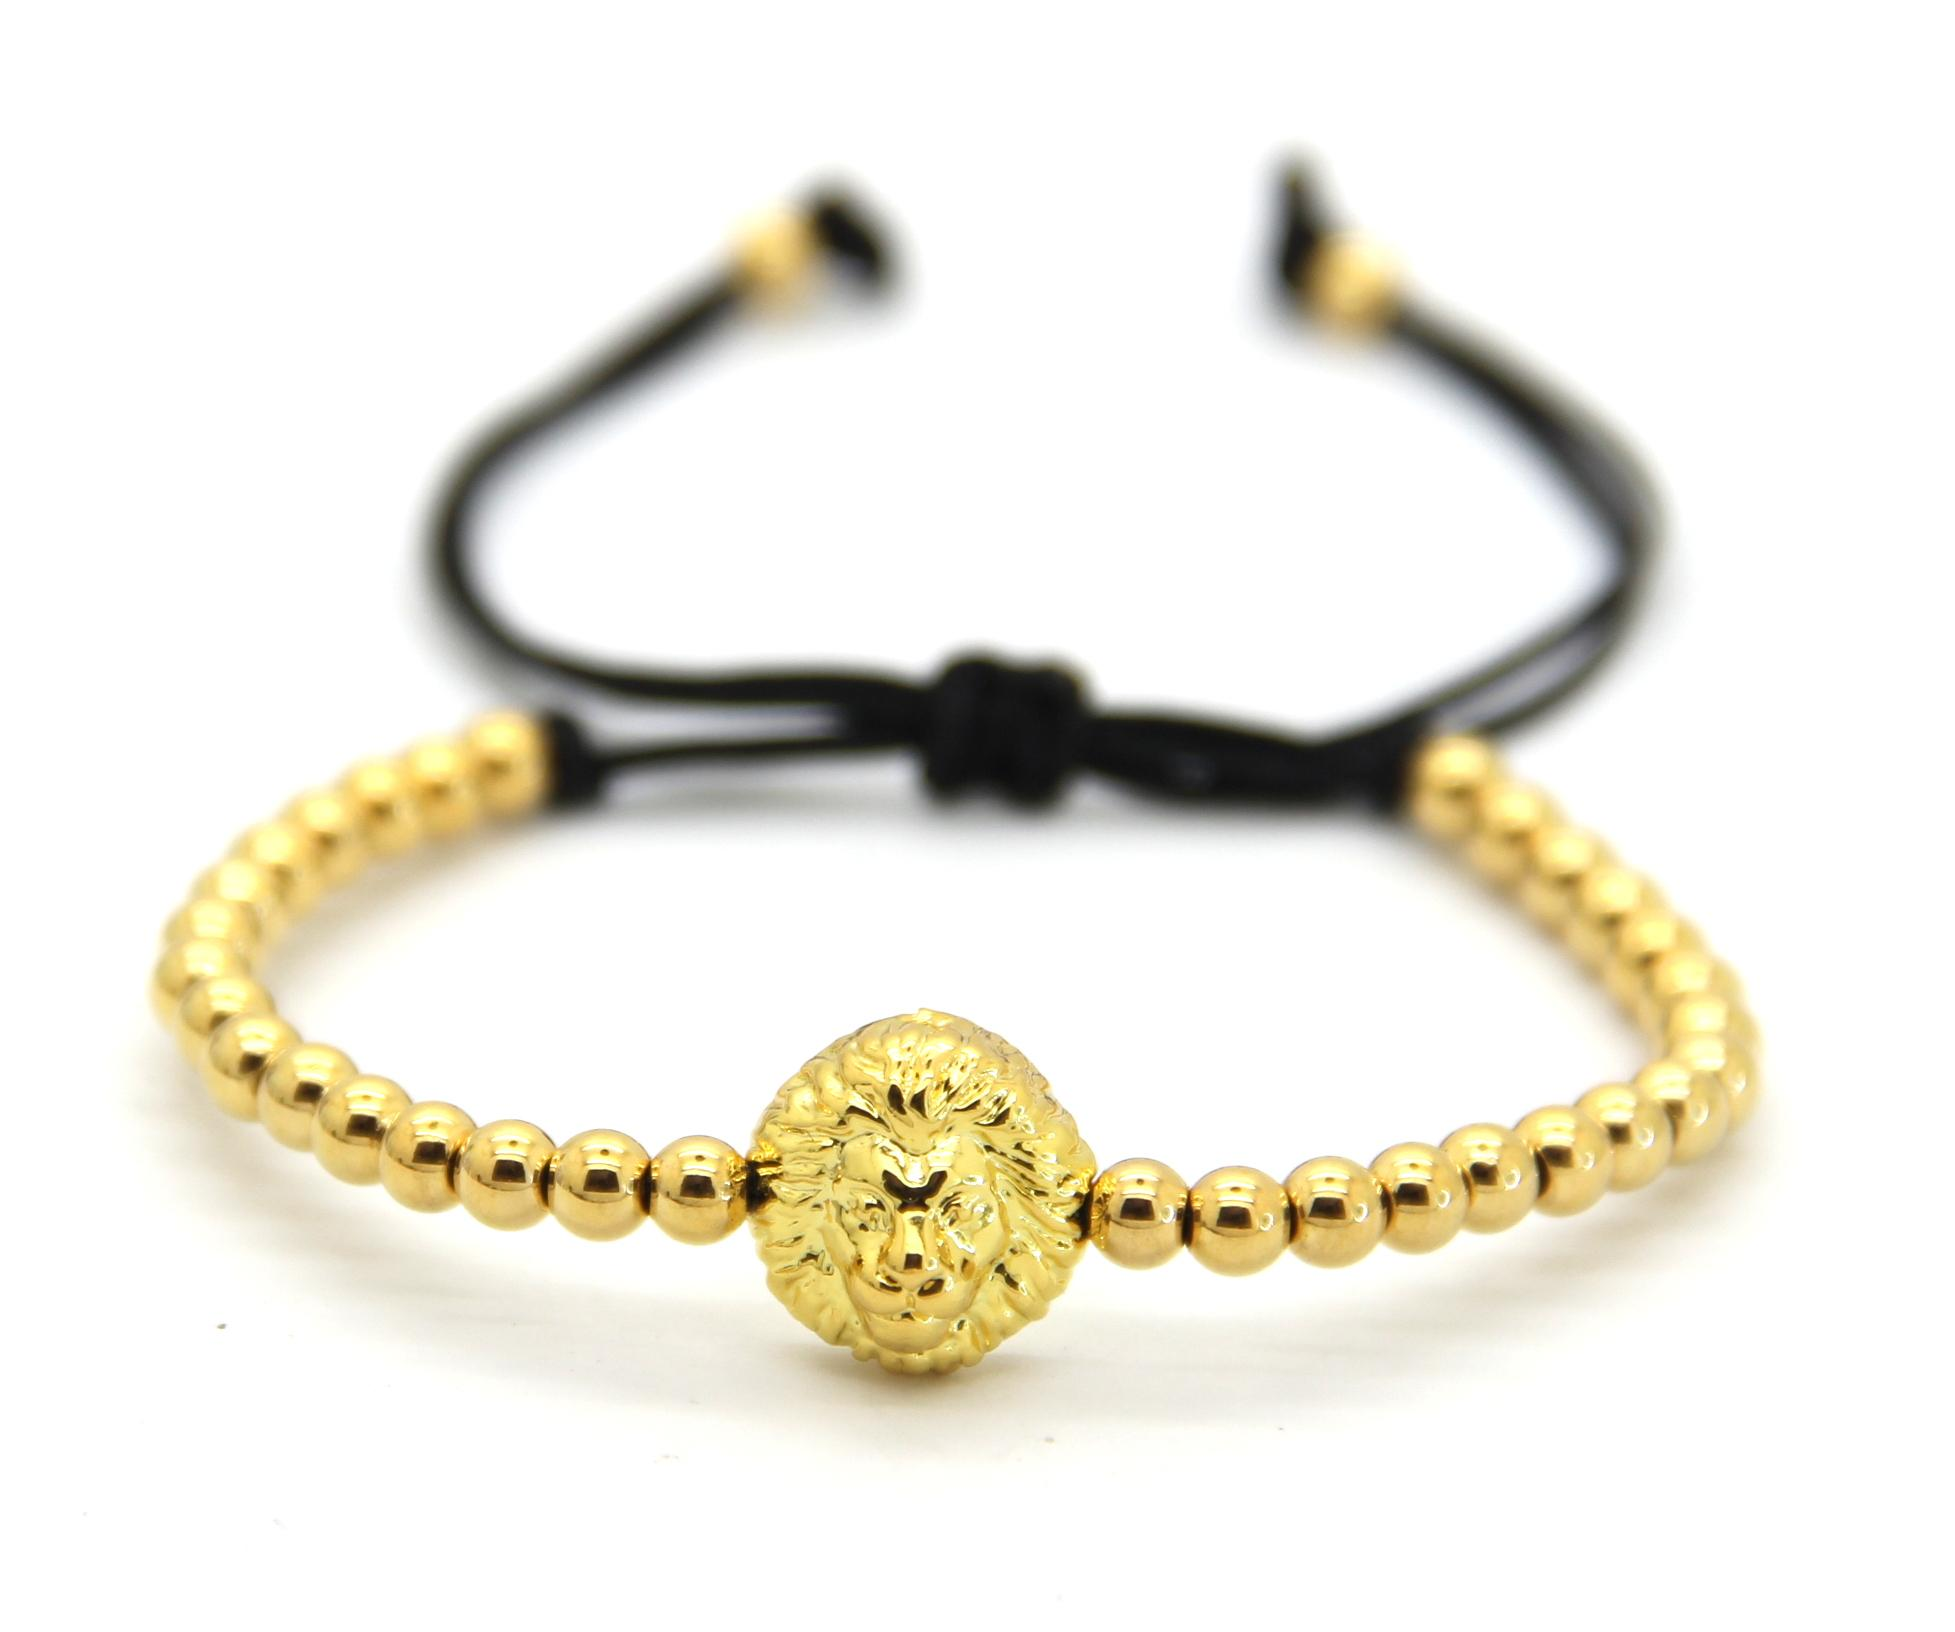 2016 Man Gold Plated Lion Head Charm Bracelet Jewelry With 4mm Copper Beads  Braiding Macrame Bracelets Charm Bracelet Charms Charms For Charm Bracelets  From